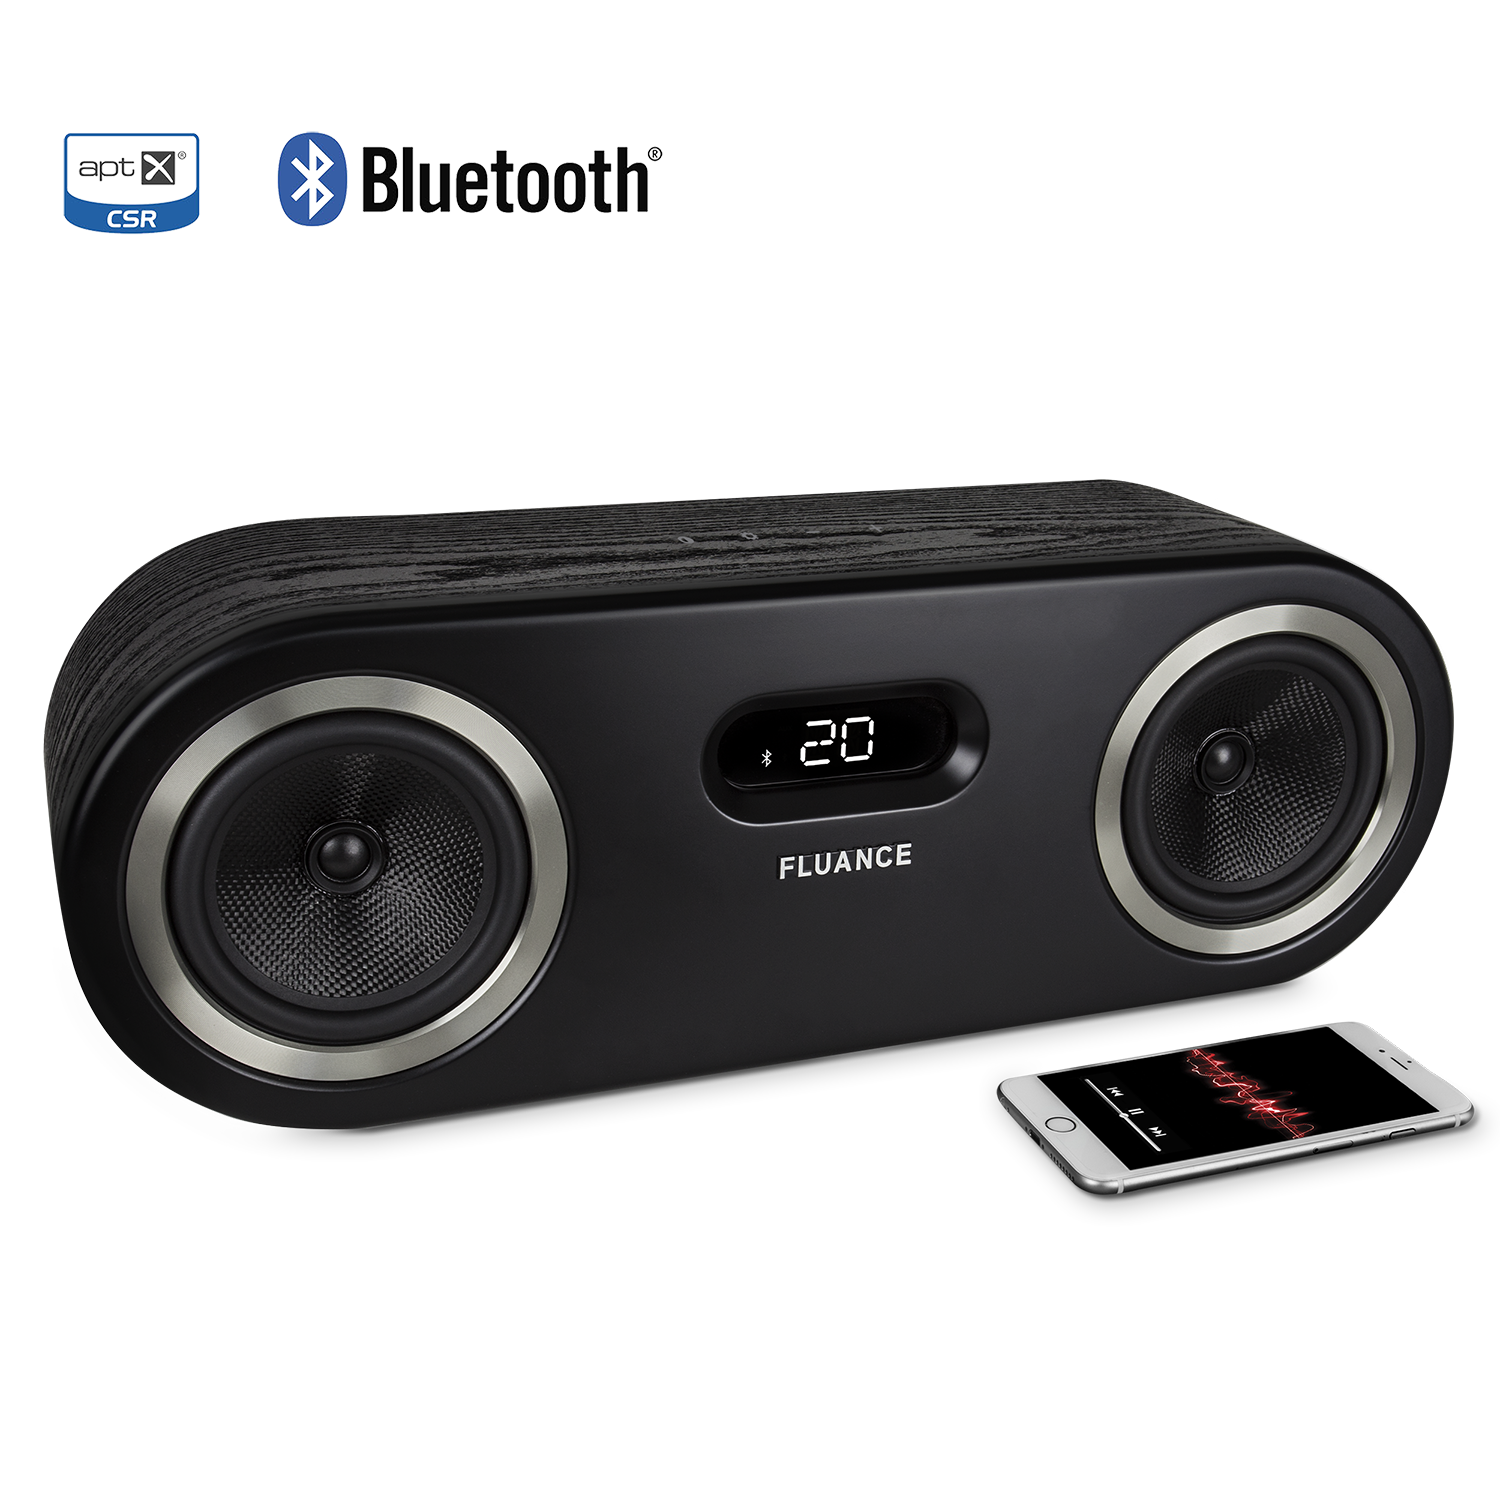 Fi50 Two-Way High Performance Wireless Bluetooth Wood Speaker System - Black Ash